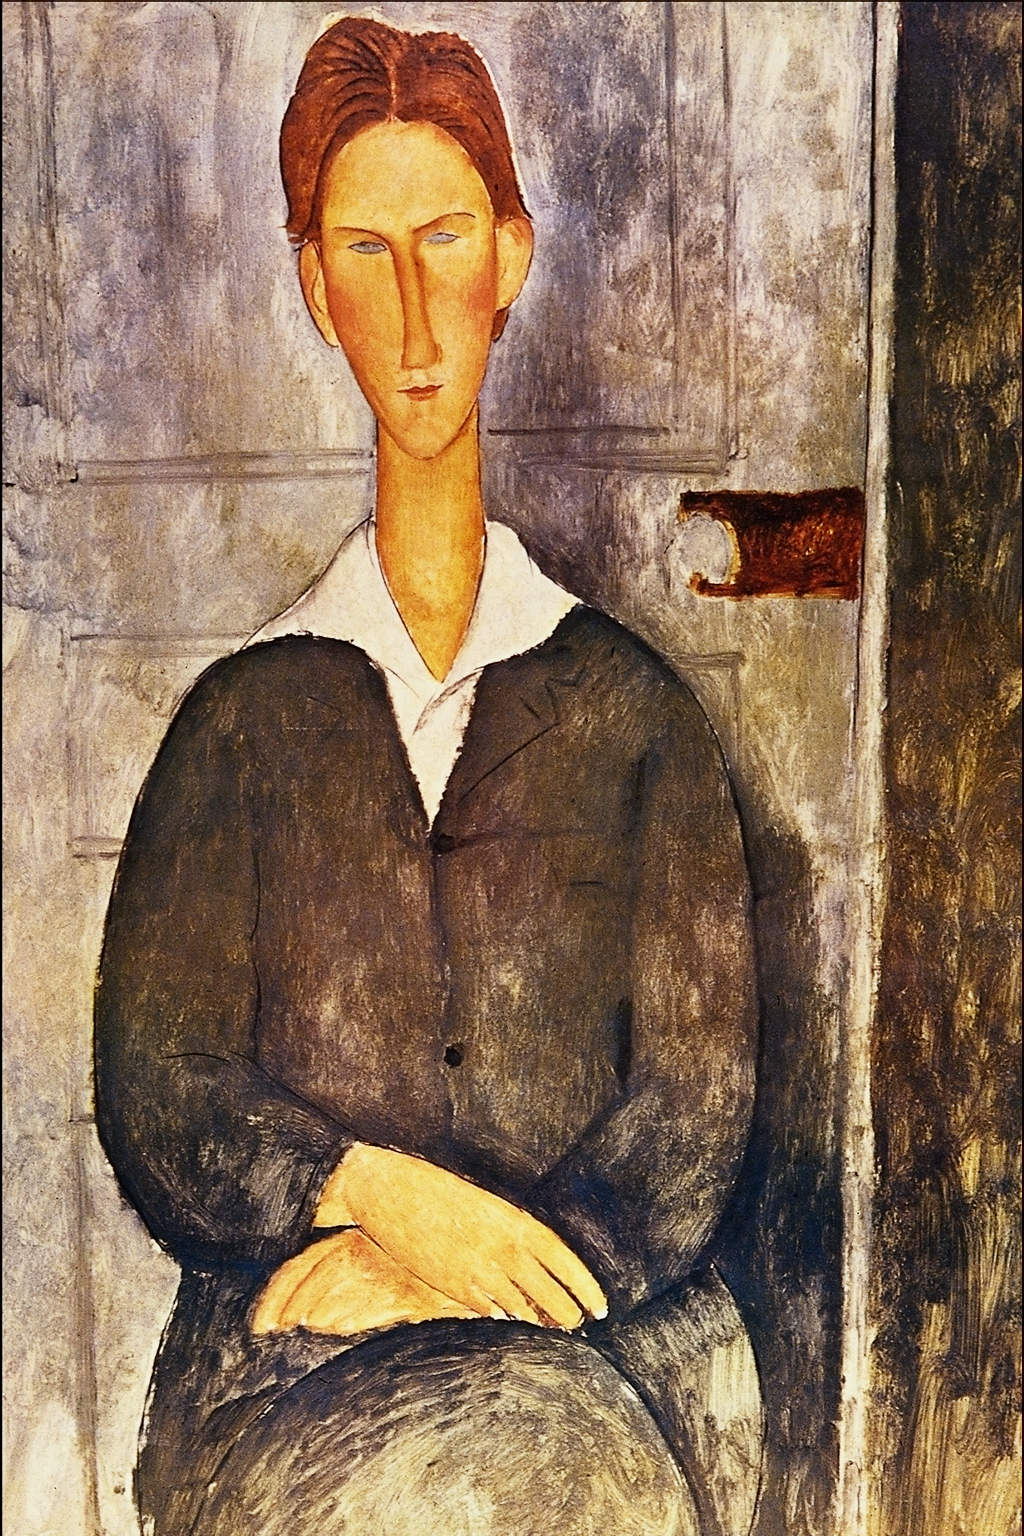 the life and times of italian painter and sculptor amedeo modigliani Facts about amedeo modigliani 1: reception during his early life as an artist, modigliani did not get great reception but later he could prove that he was one of the greatest artists in the world facts about amedeo modigliani 2: the works of arts if you check out his paintings, they are characterized with nudes and portraits.